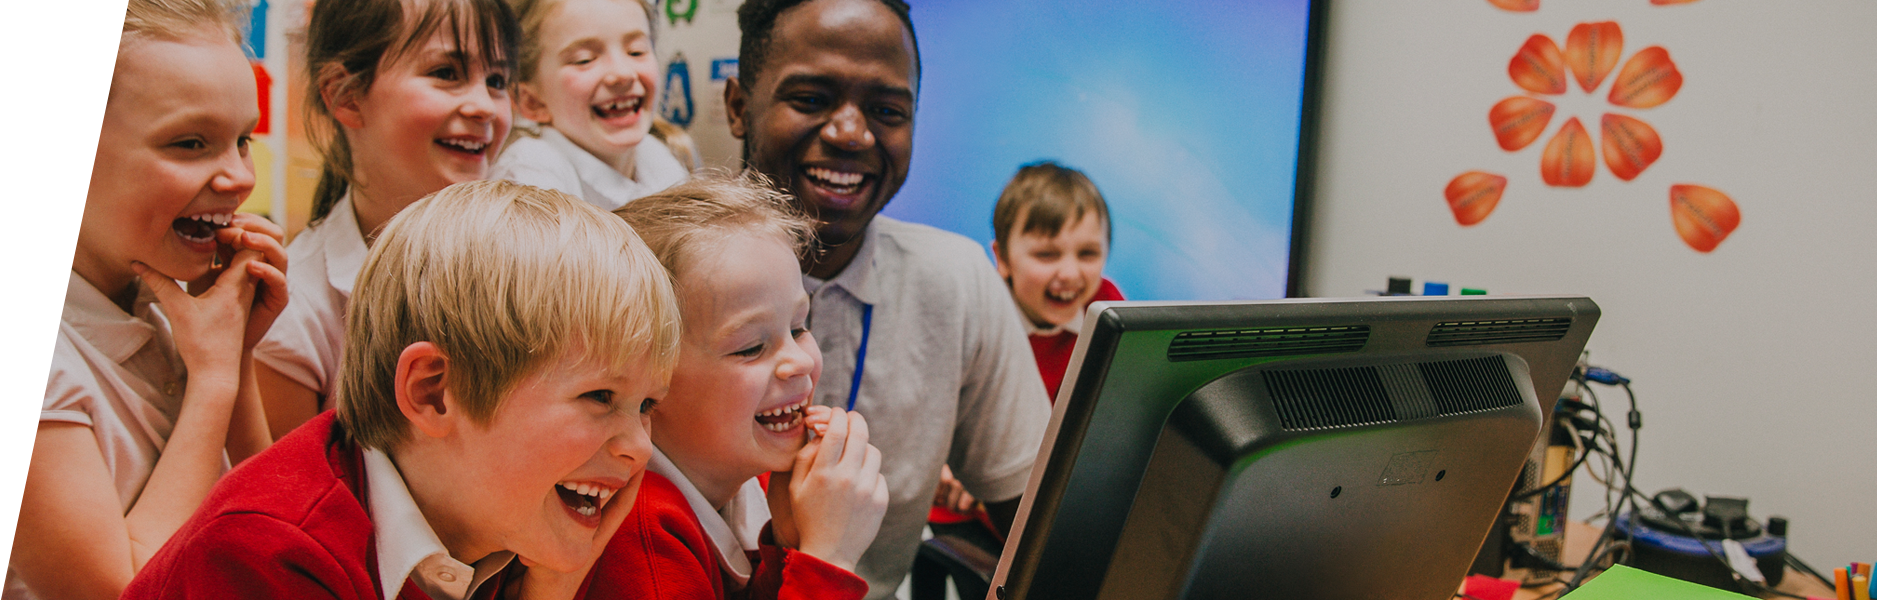 The UK's Leading Technology Provider for Schools